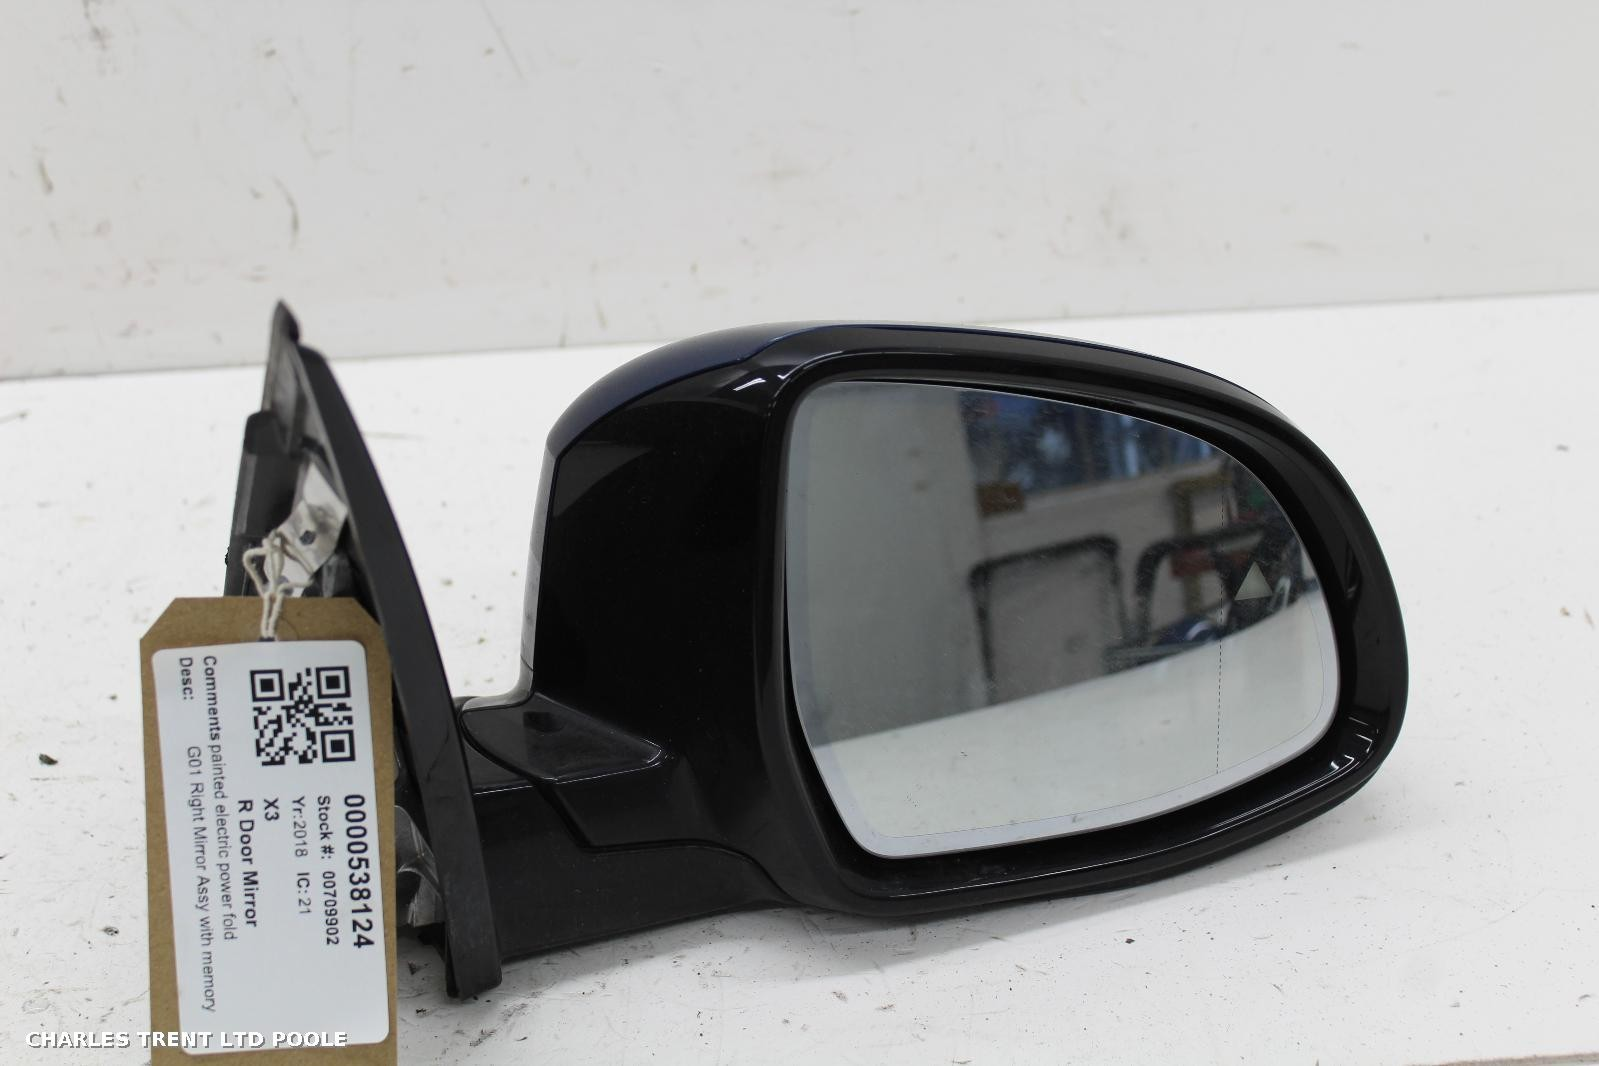 2018 - BMW - X3 - DOOR MIRRORS / WING MIRRORS (RIGHT / DRIVER SIDE)